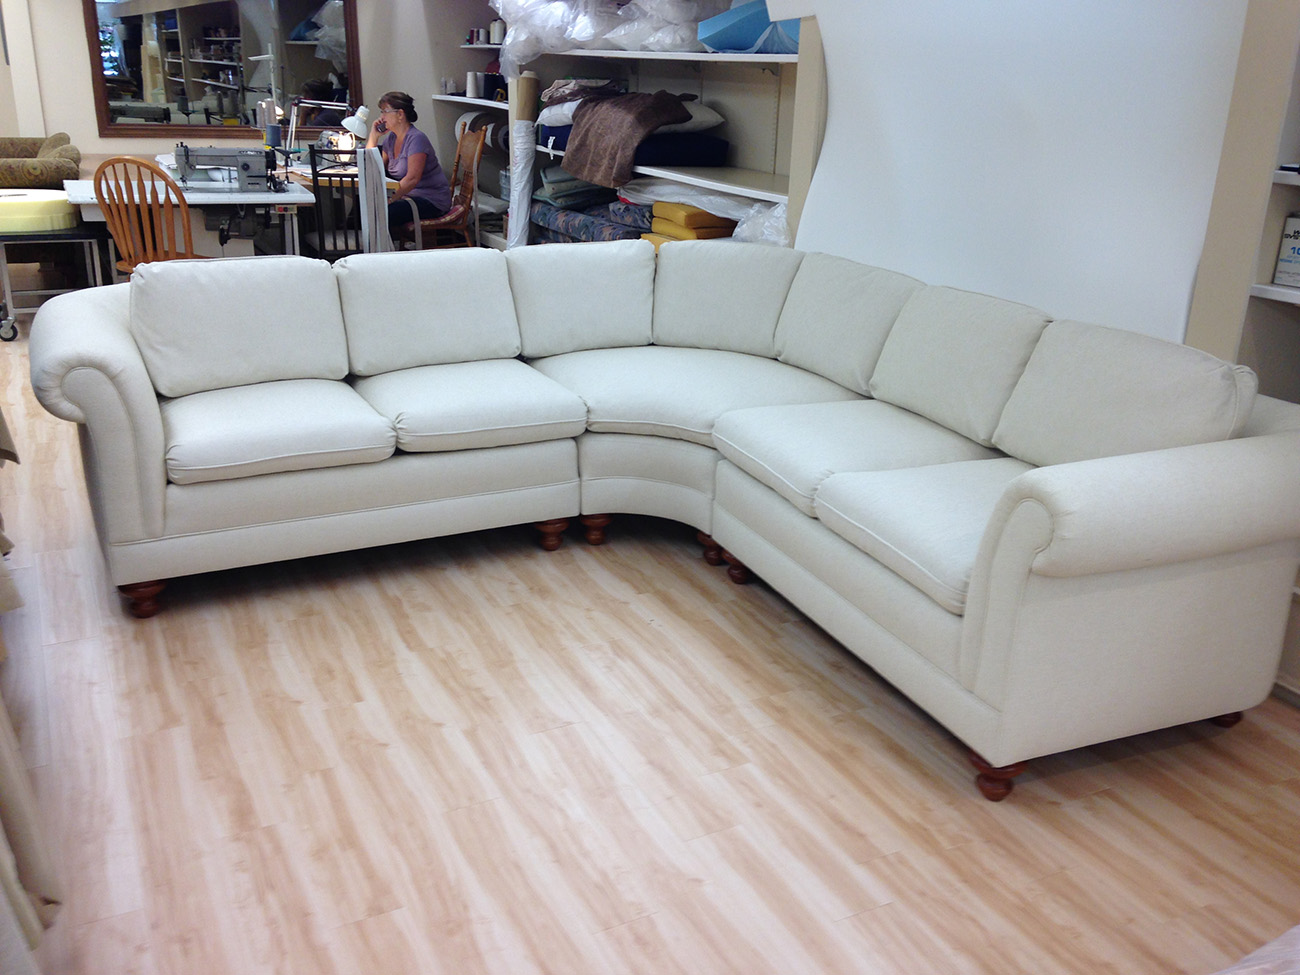 upholstery of sofa sofas chaise longue el corte ingles sectional re foamland and ted 39s